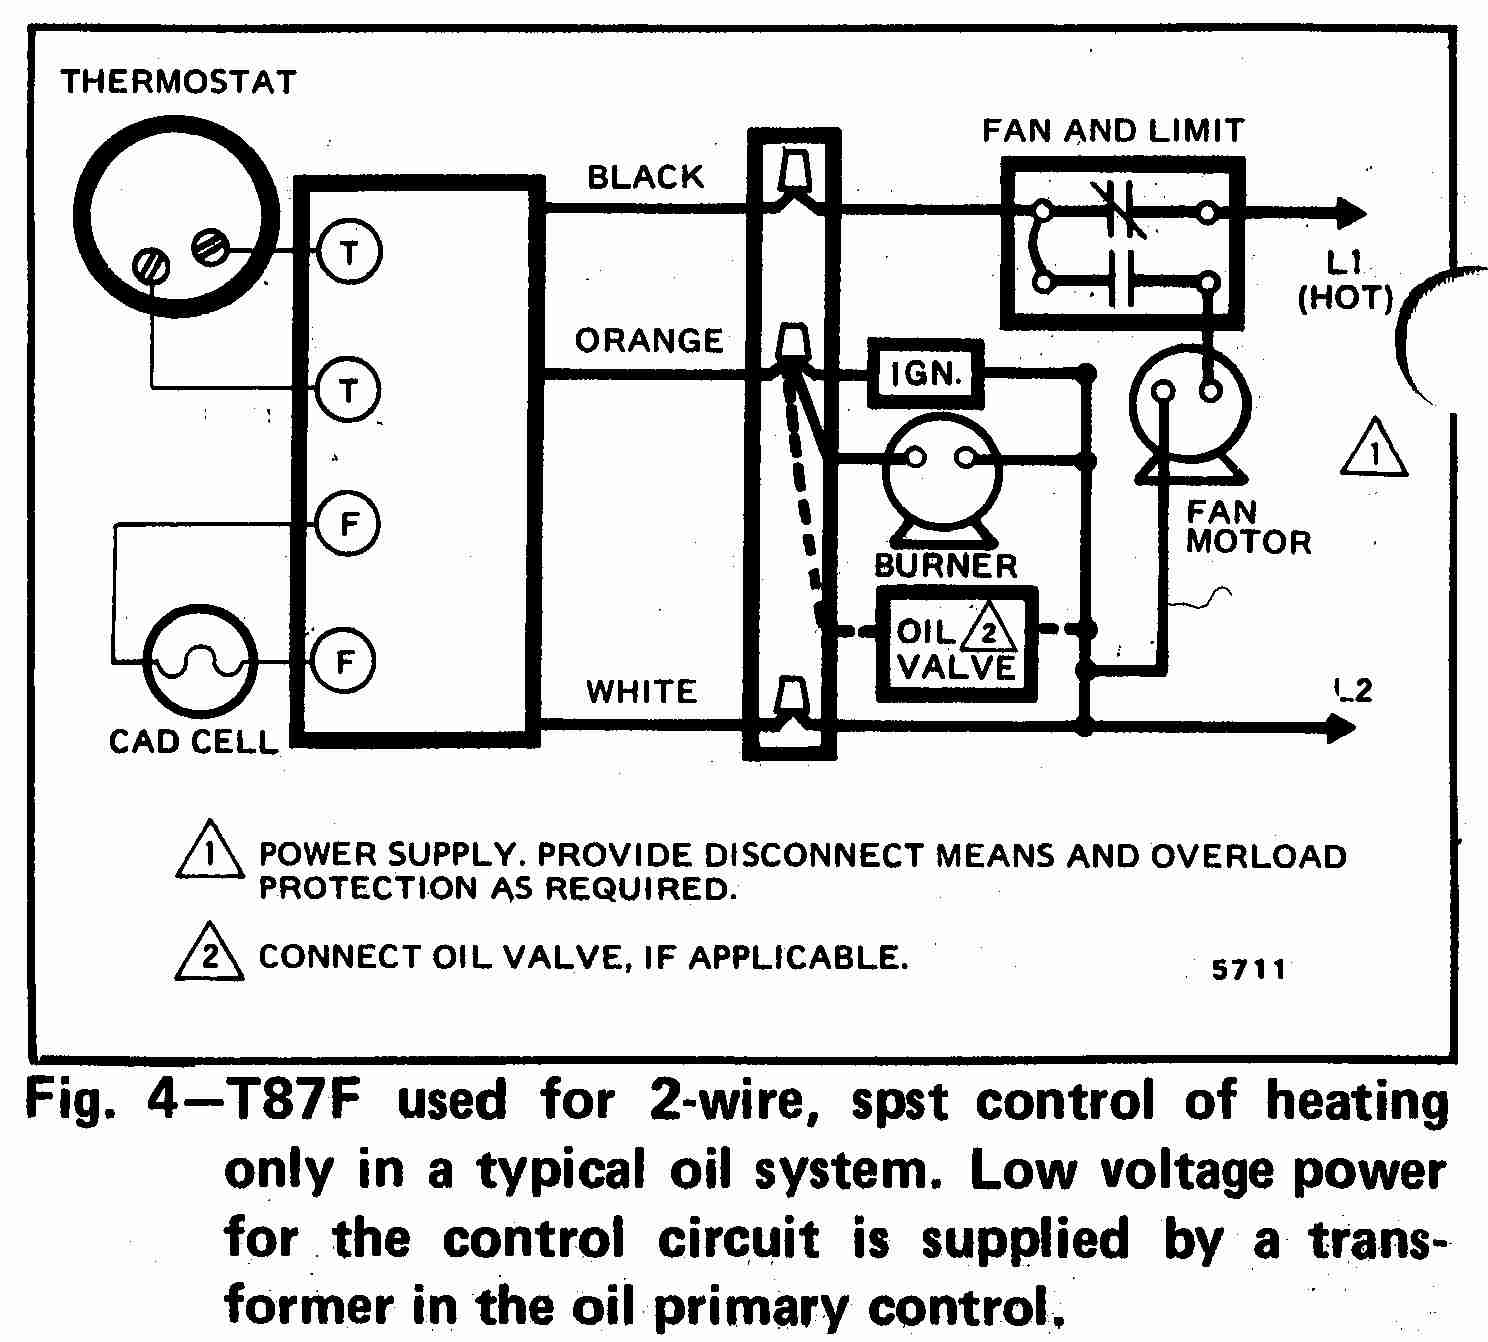 TT_T87F_0002_2W_DJF honeywell wiring diagram honeywell rth221b wiring diagram \u2022 wiring honeywell humidifier wiring diagram at n-0.co